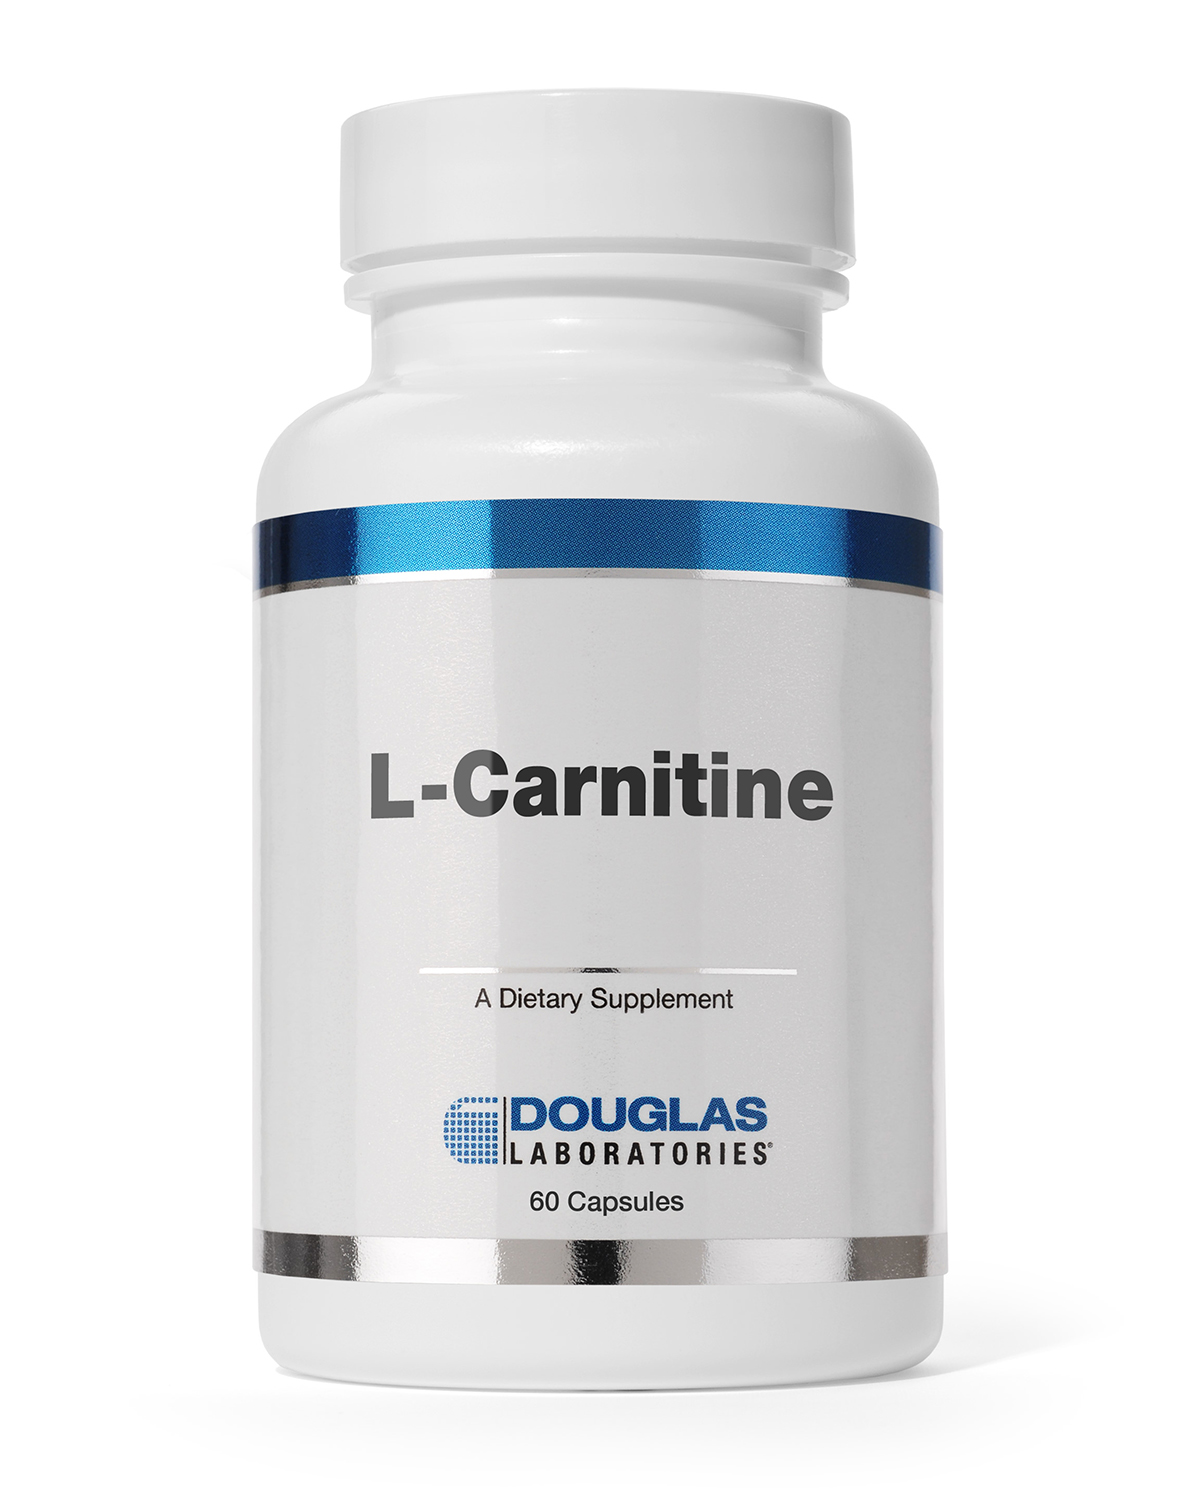 L-Carnitine Health Benefits